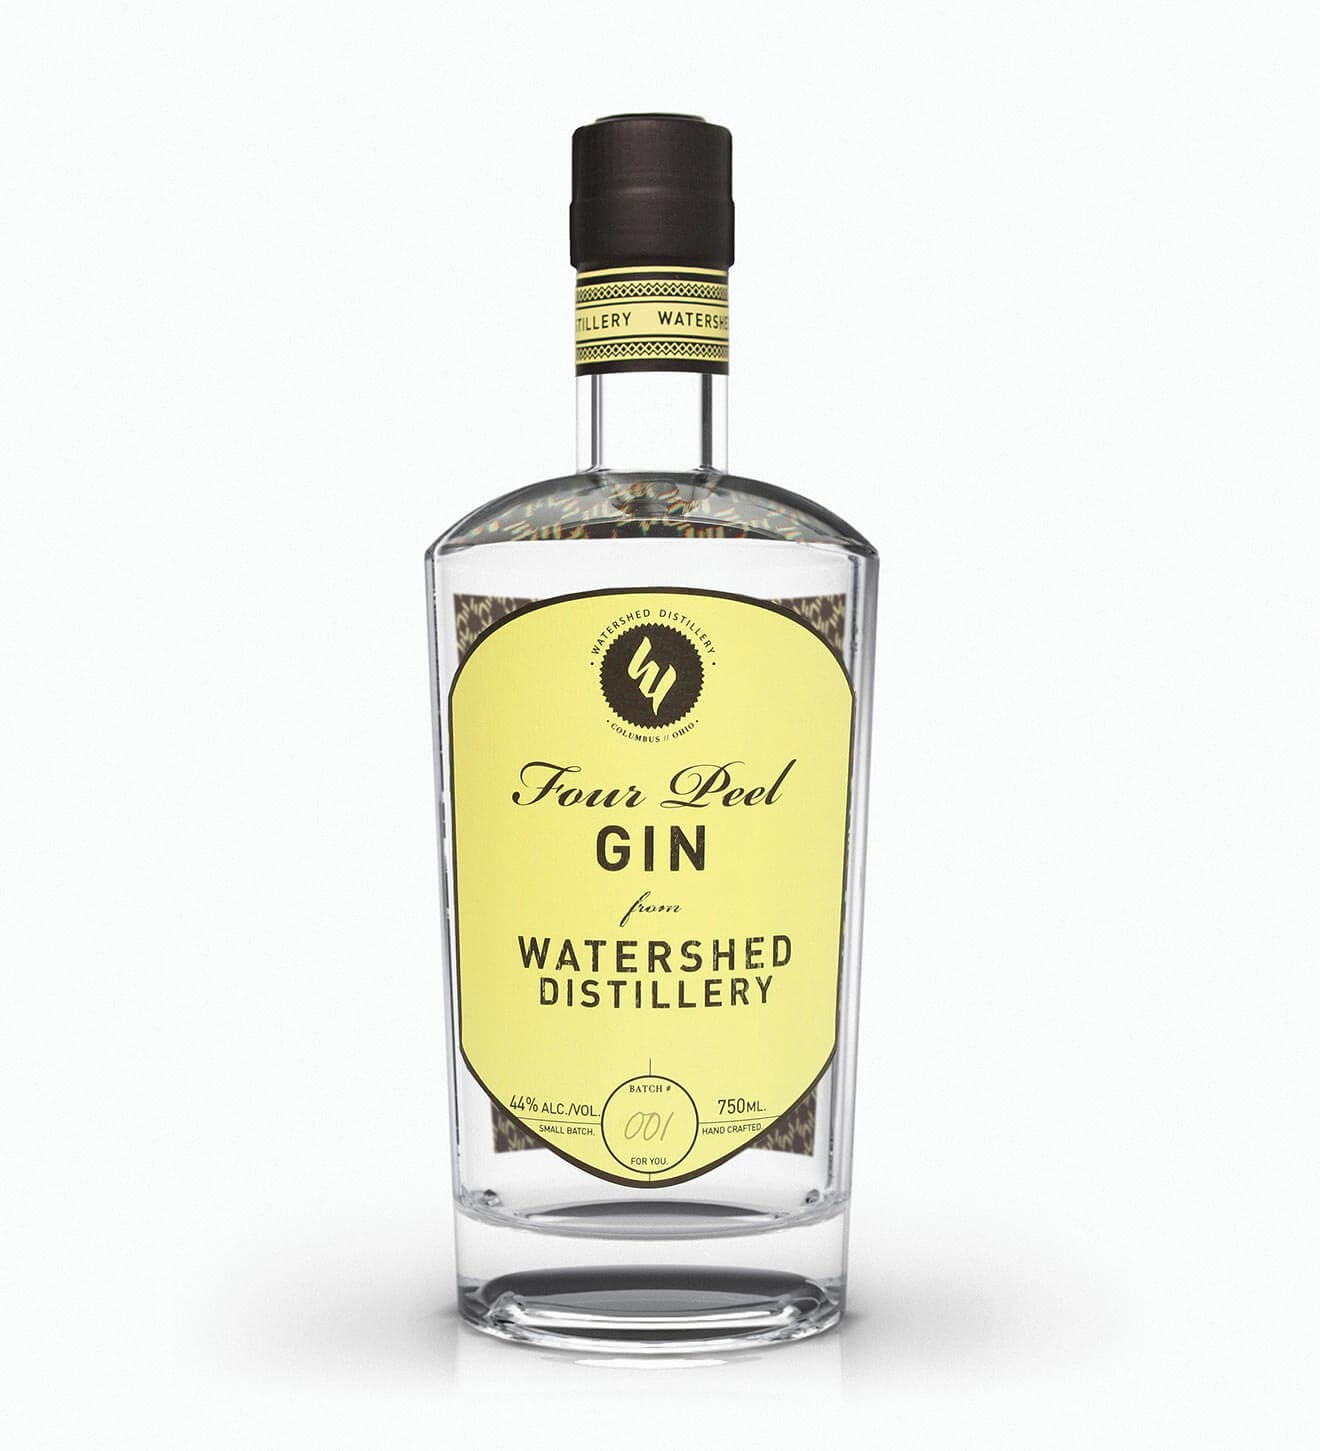 Watershed Four Peel Gin, bottle on white